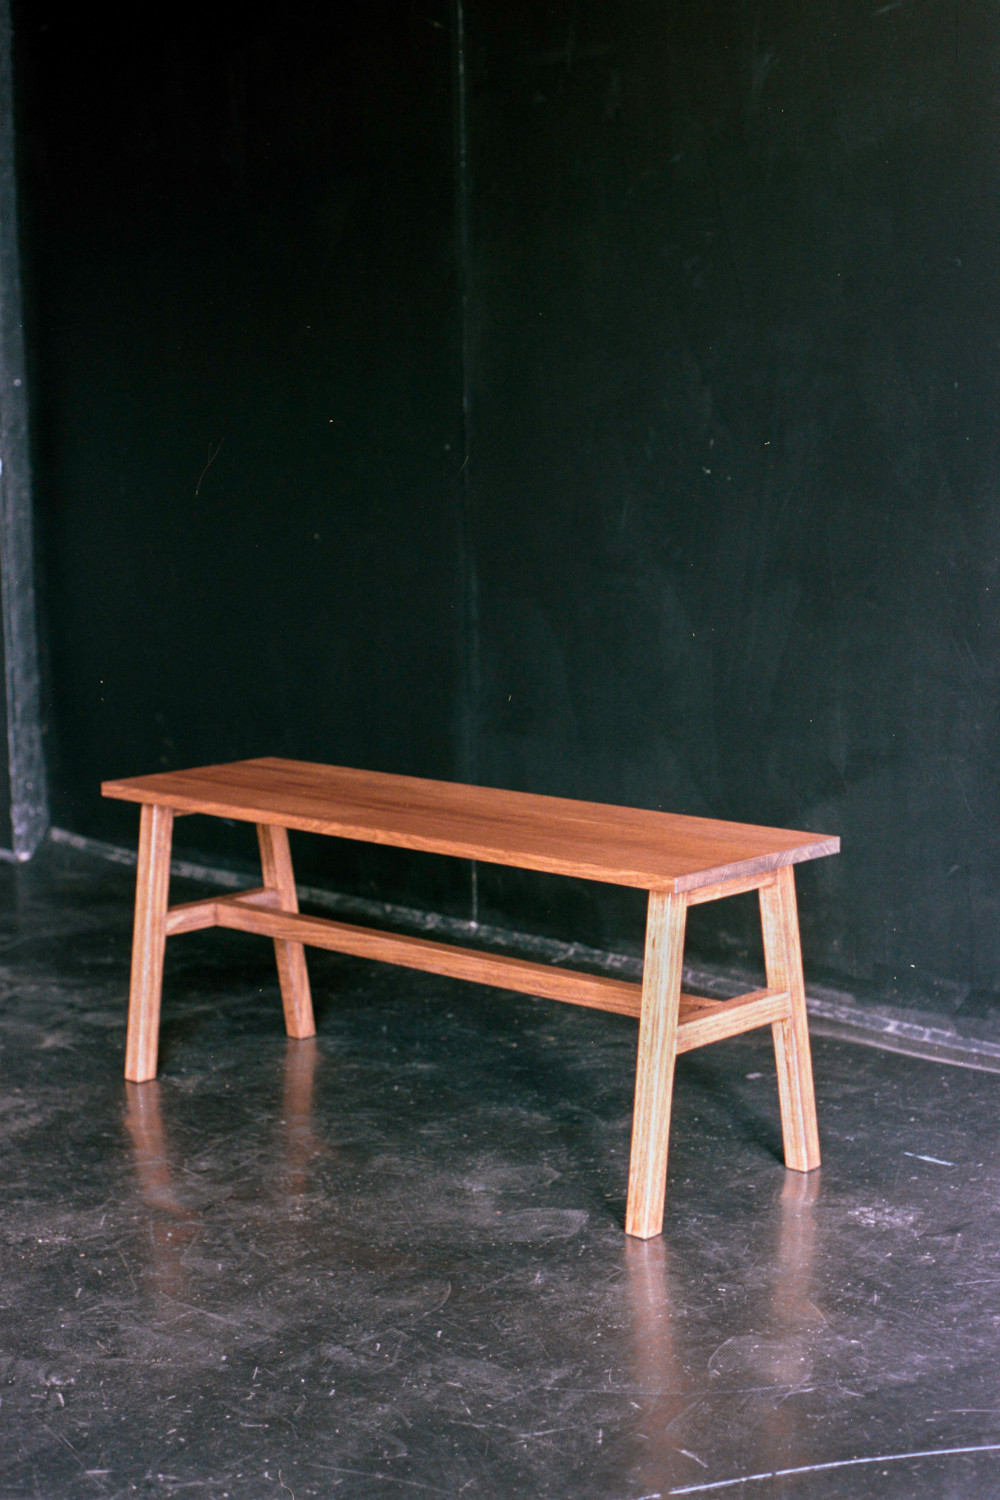 Classic style bench